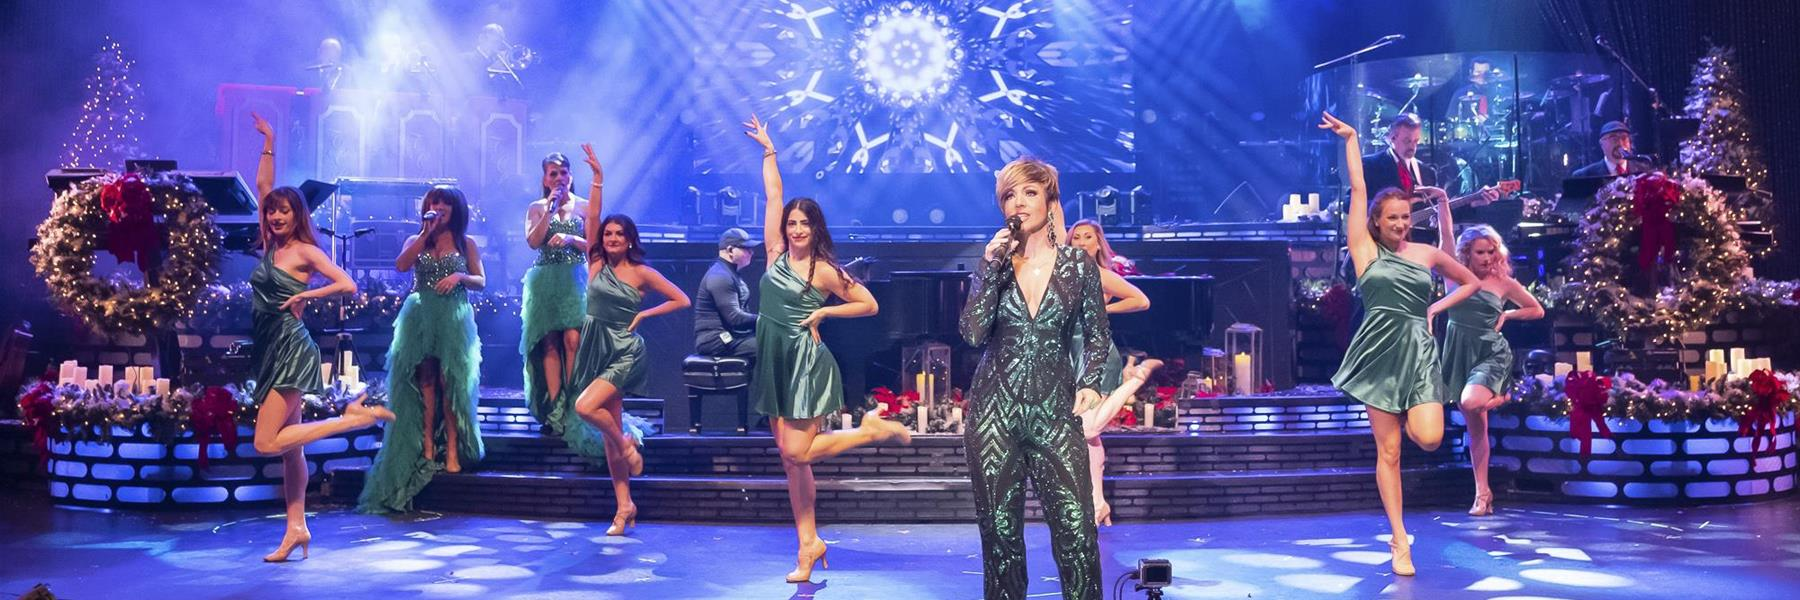 The Carolina Opry Christmas Special in Myrtle Beach, South Carolina